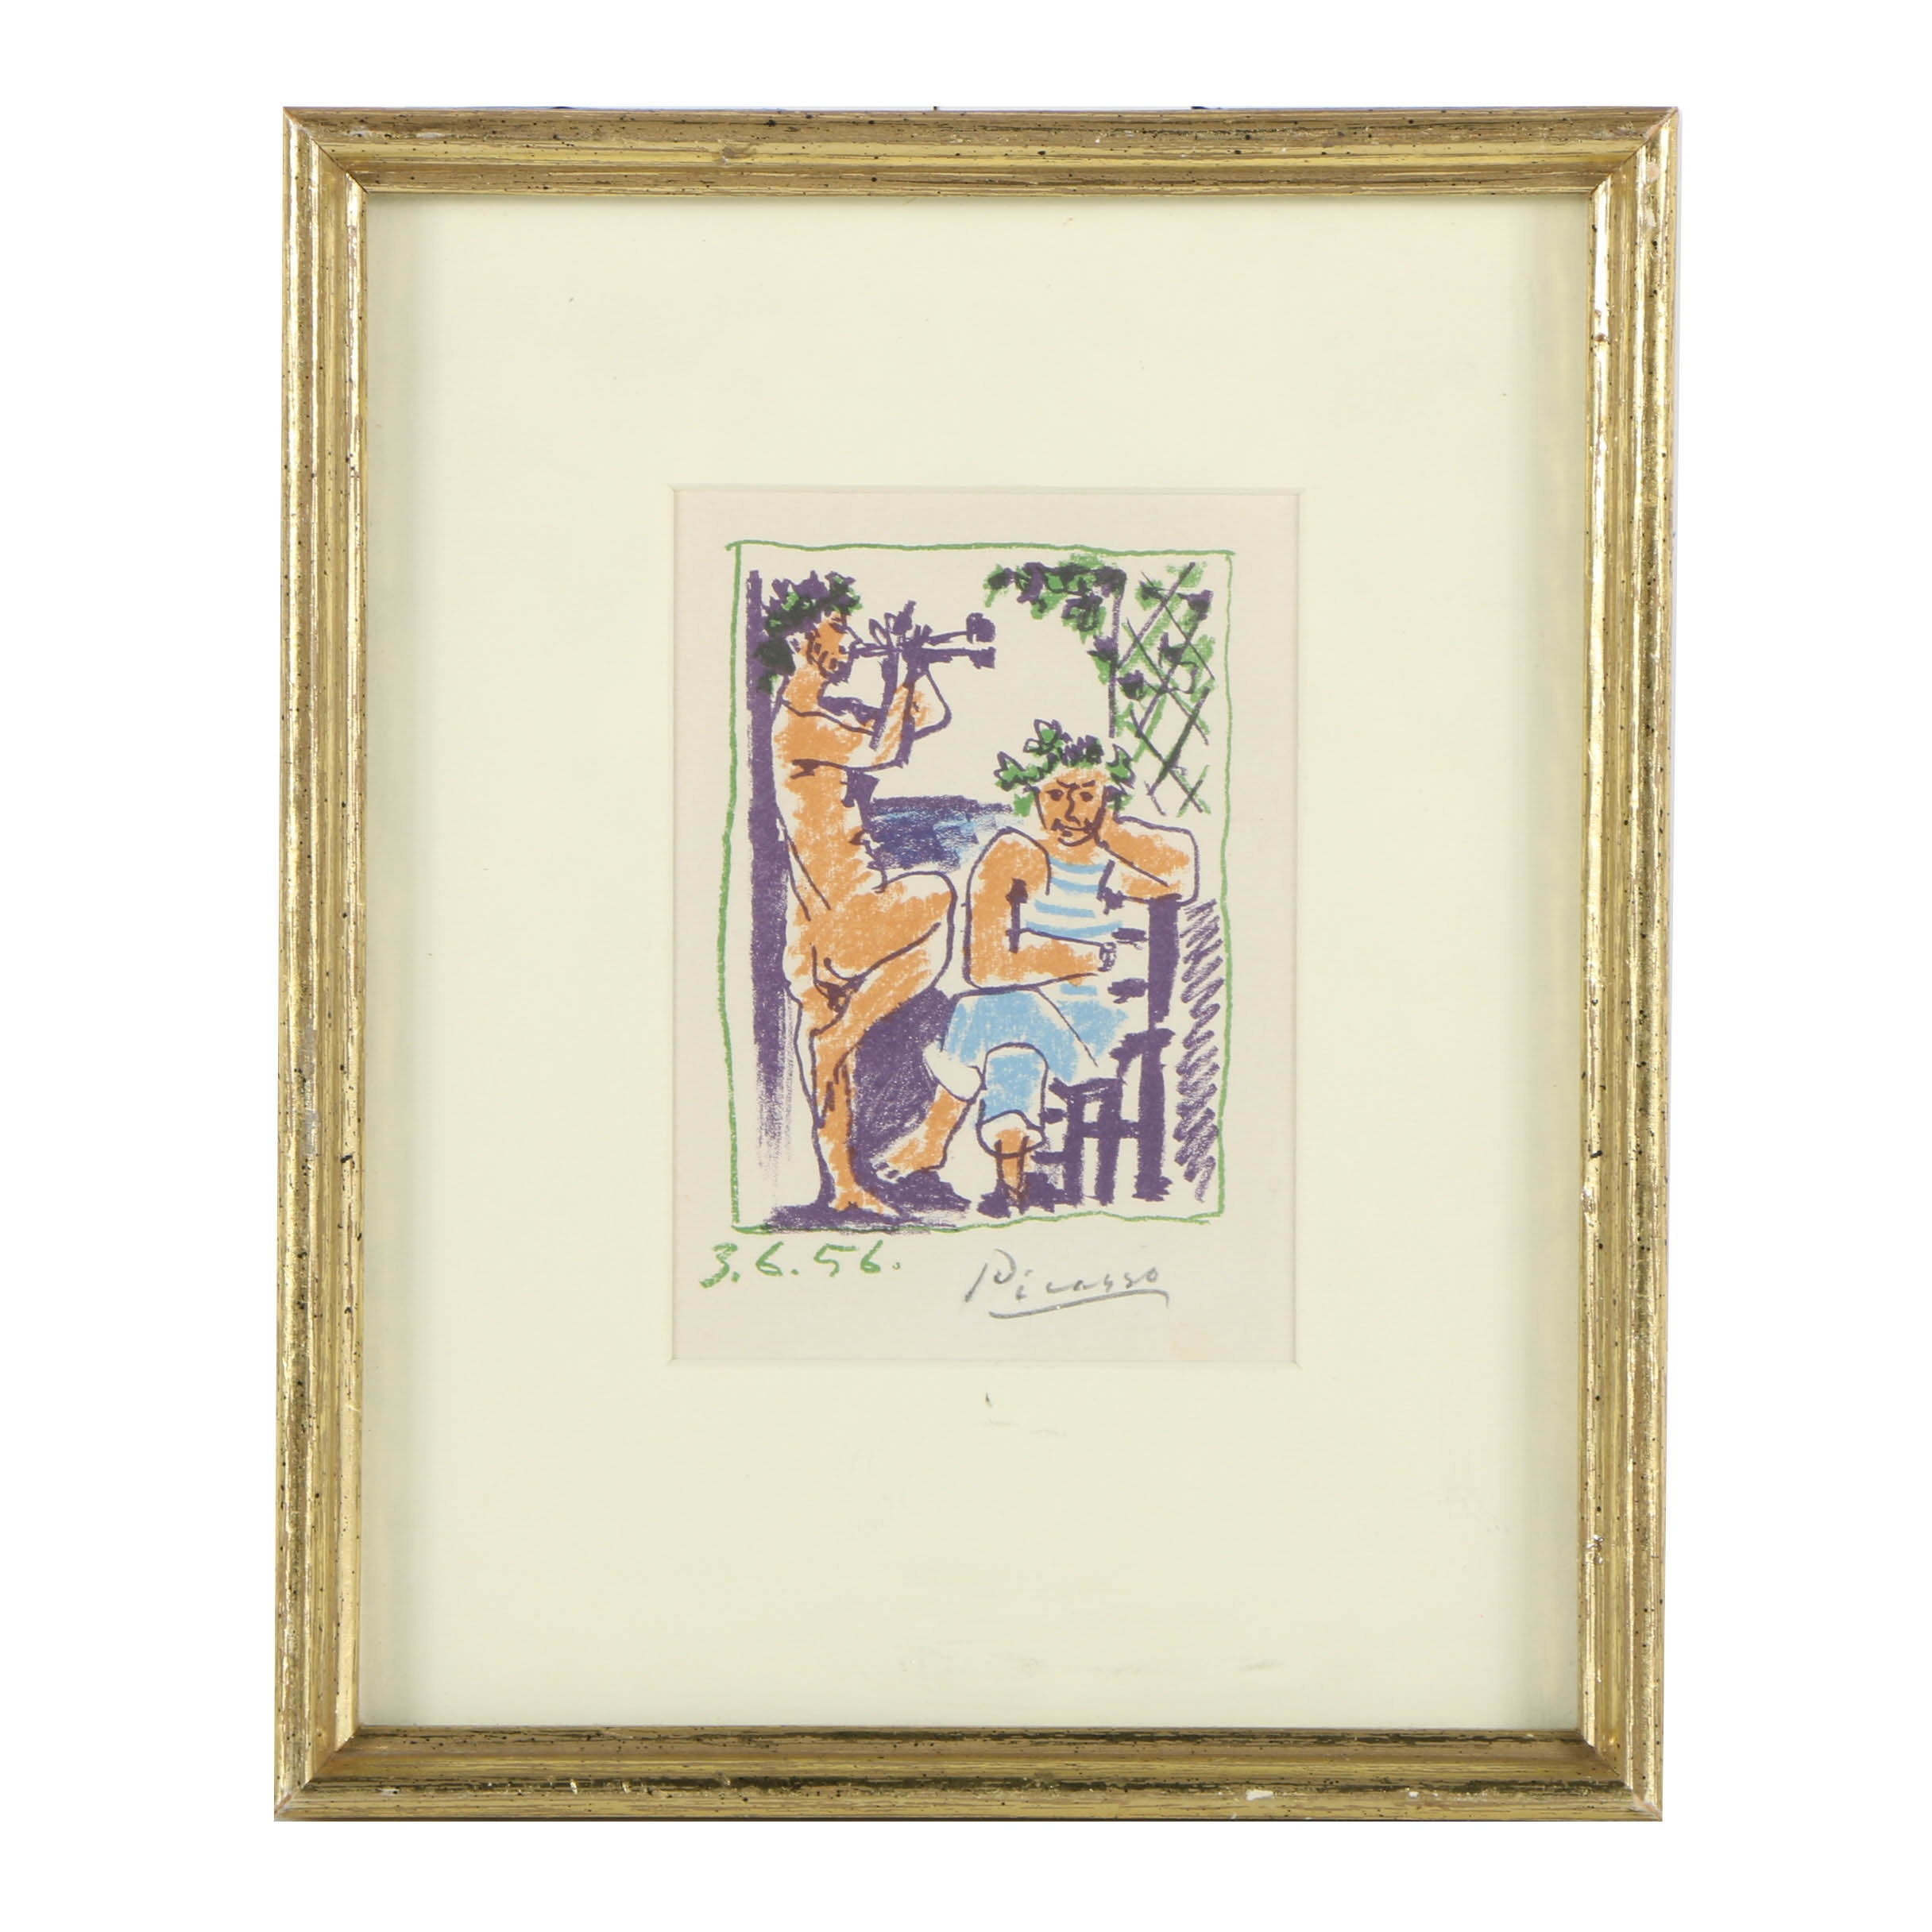 Reproduction Color Lithograph After Pablo Picasso's _Faun et Marin_